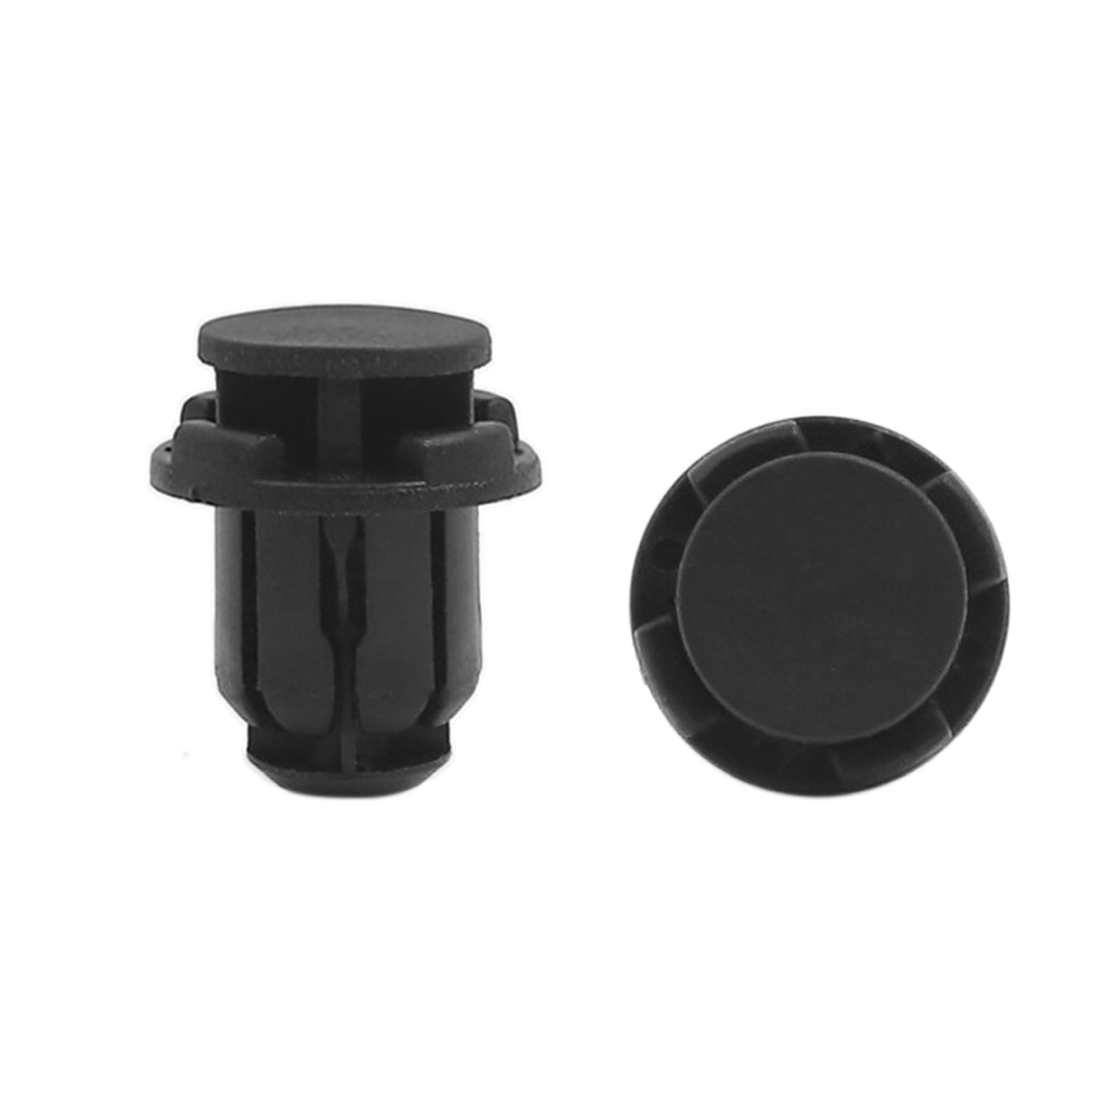 100 Pcs Black Plastic Splash Guard Fastener Mat Clips 14mm x 13mm x 21mm